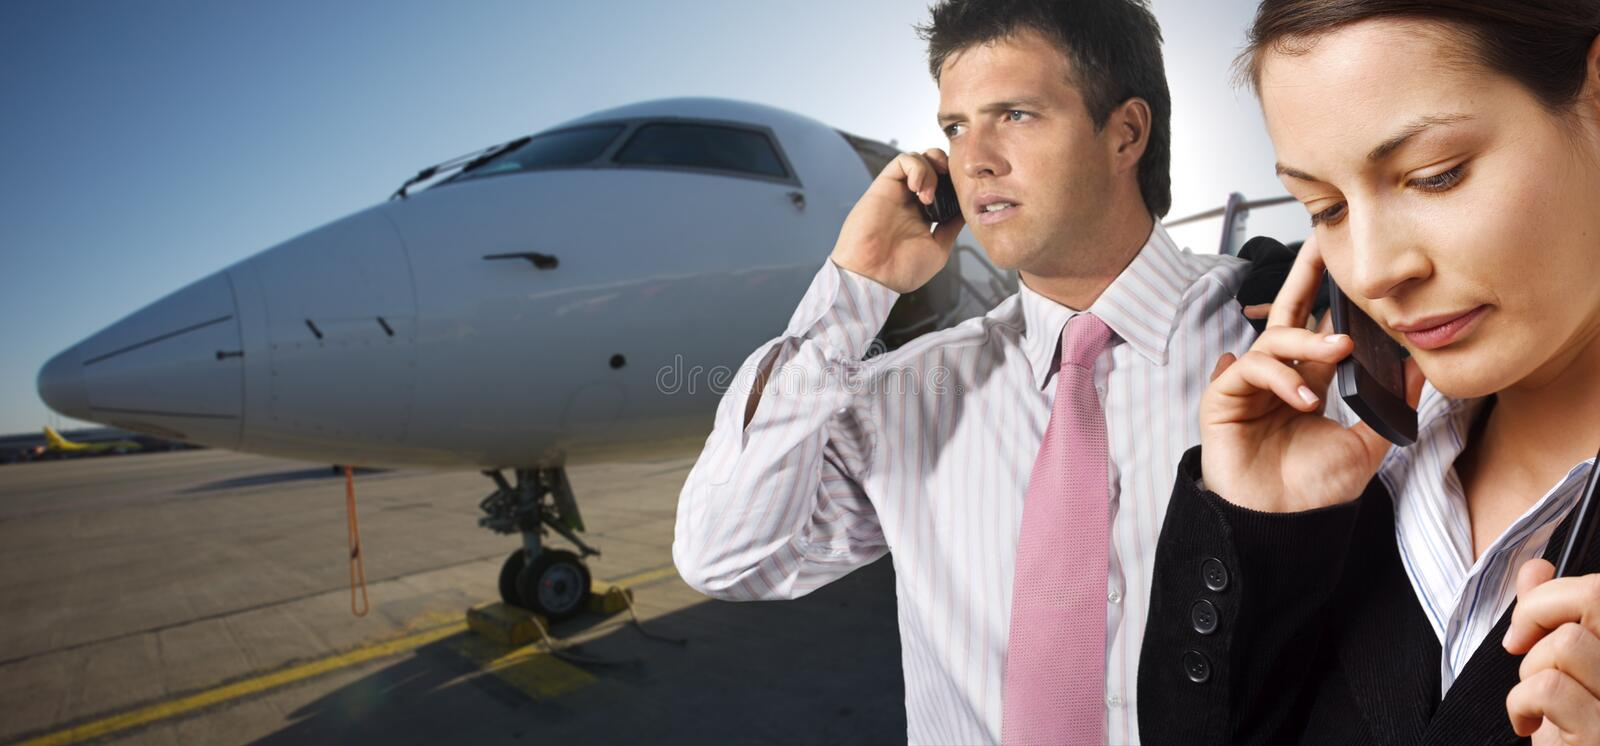 Corporate jet. Very busy young businesspeople talk on mobiles. They are on the runaway in front of a corporate jet royalty free stock images